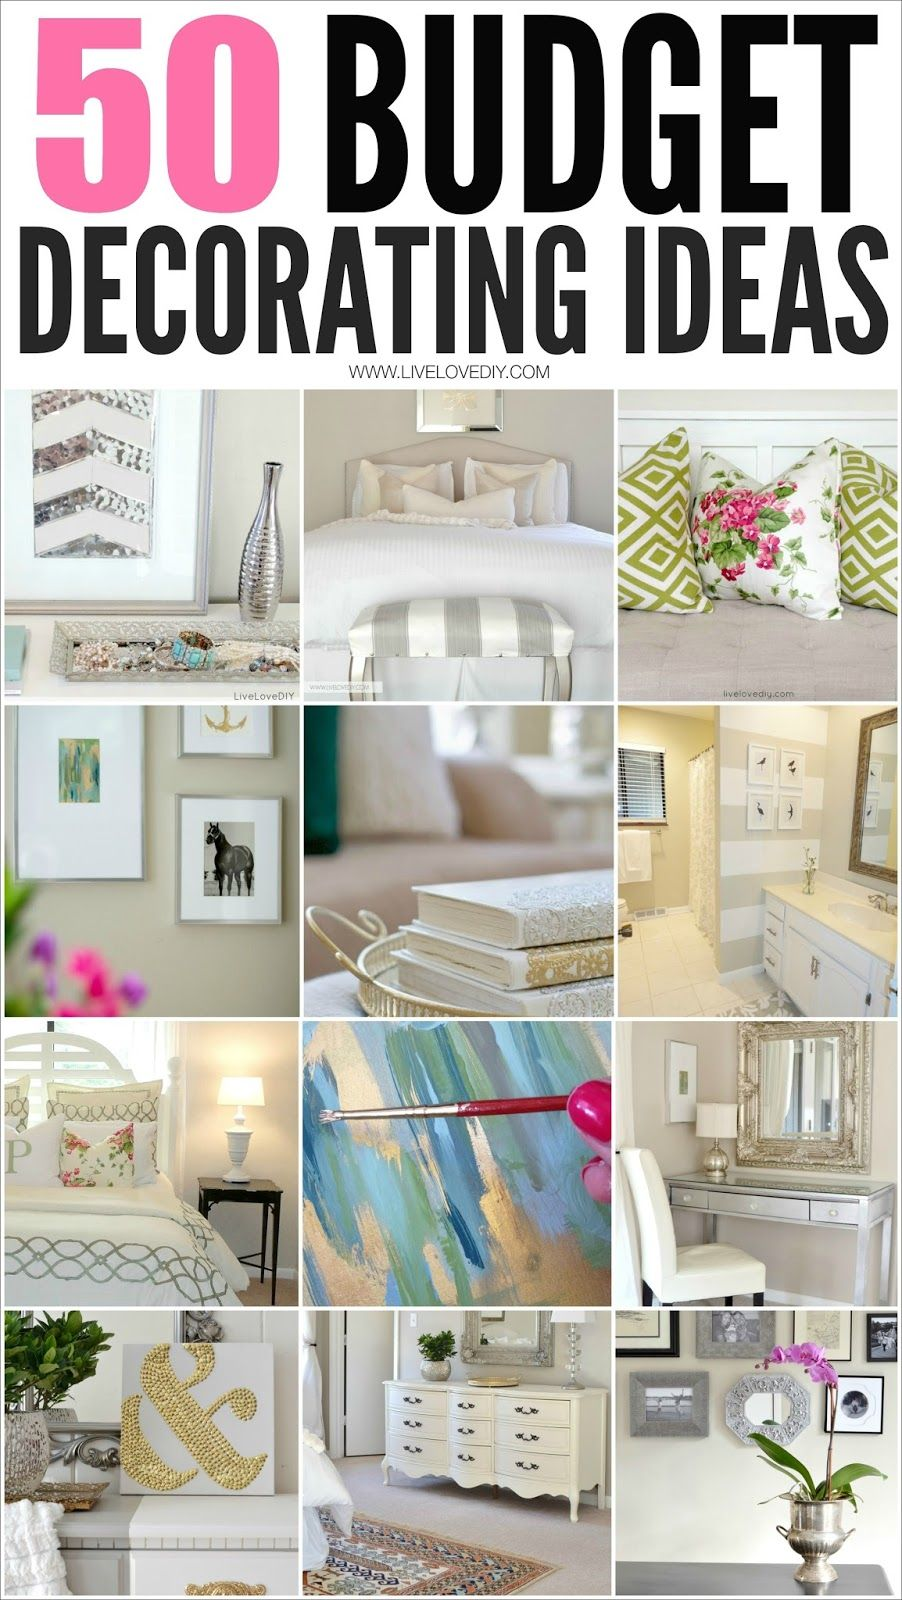 50 Budget Decorating Tips You Should Know!   LiveLoveDIY. Budget DecoratingApartments  DecoratingBedroom Decorating IdeasDecor ...